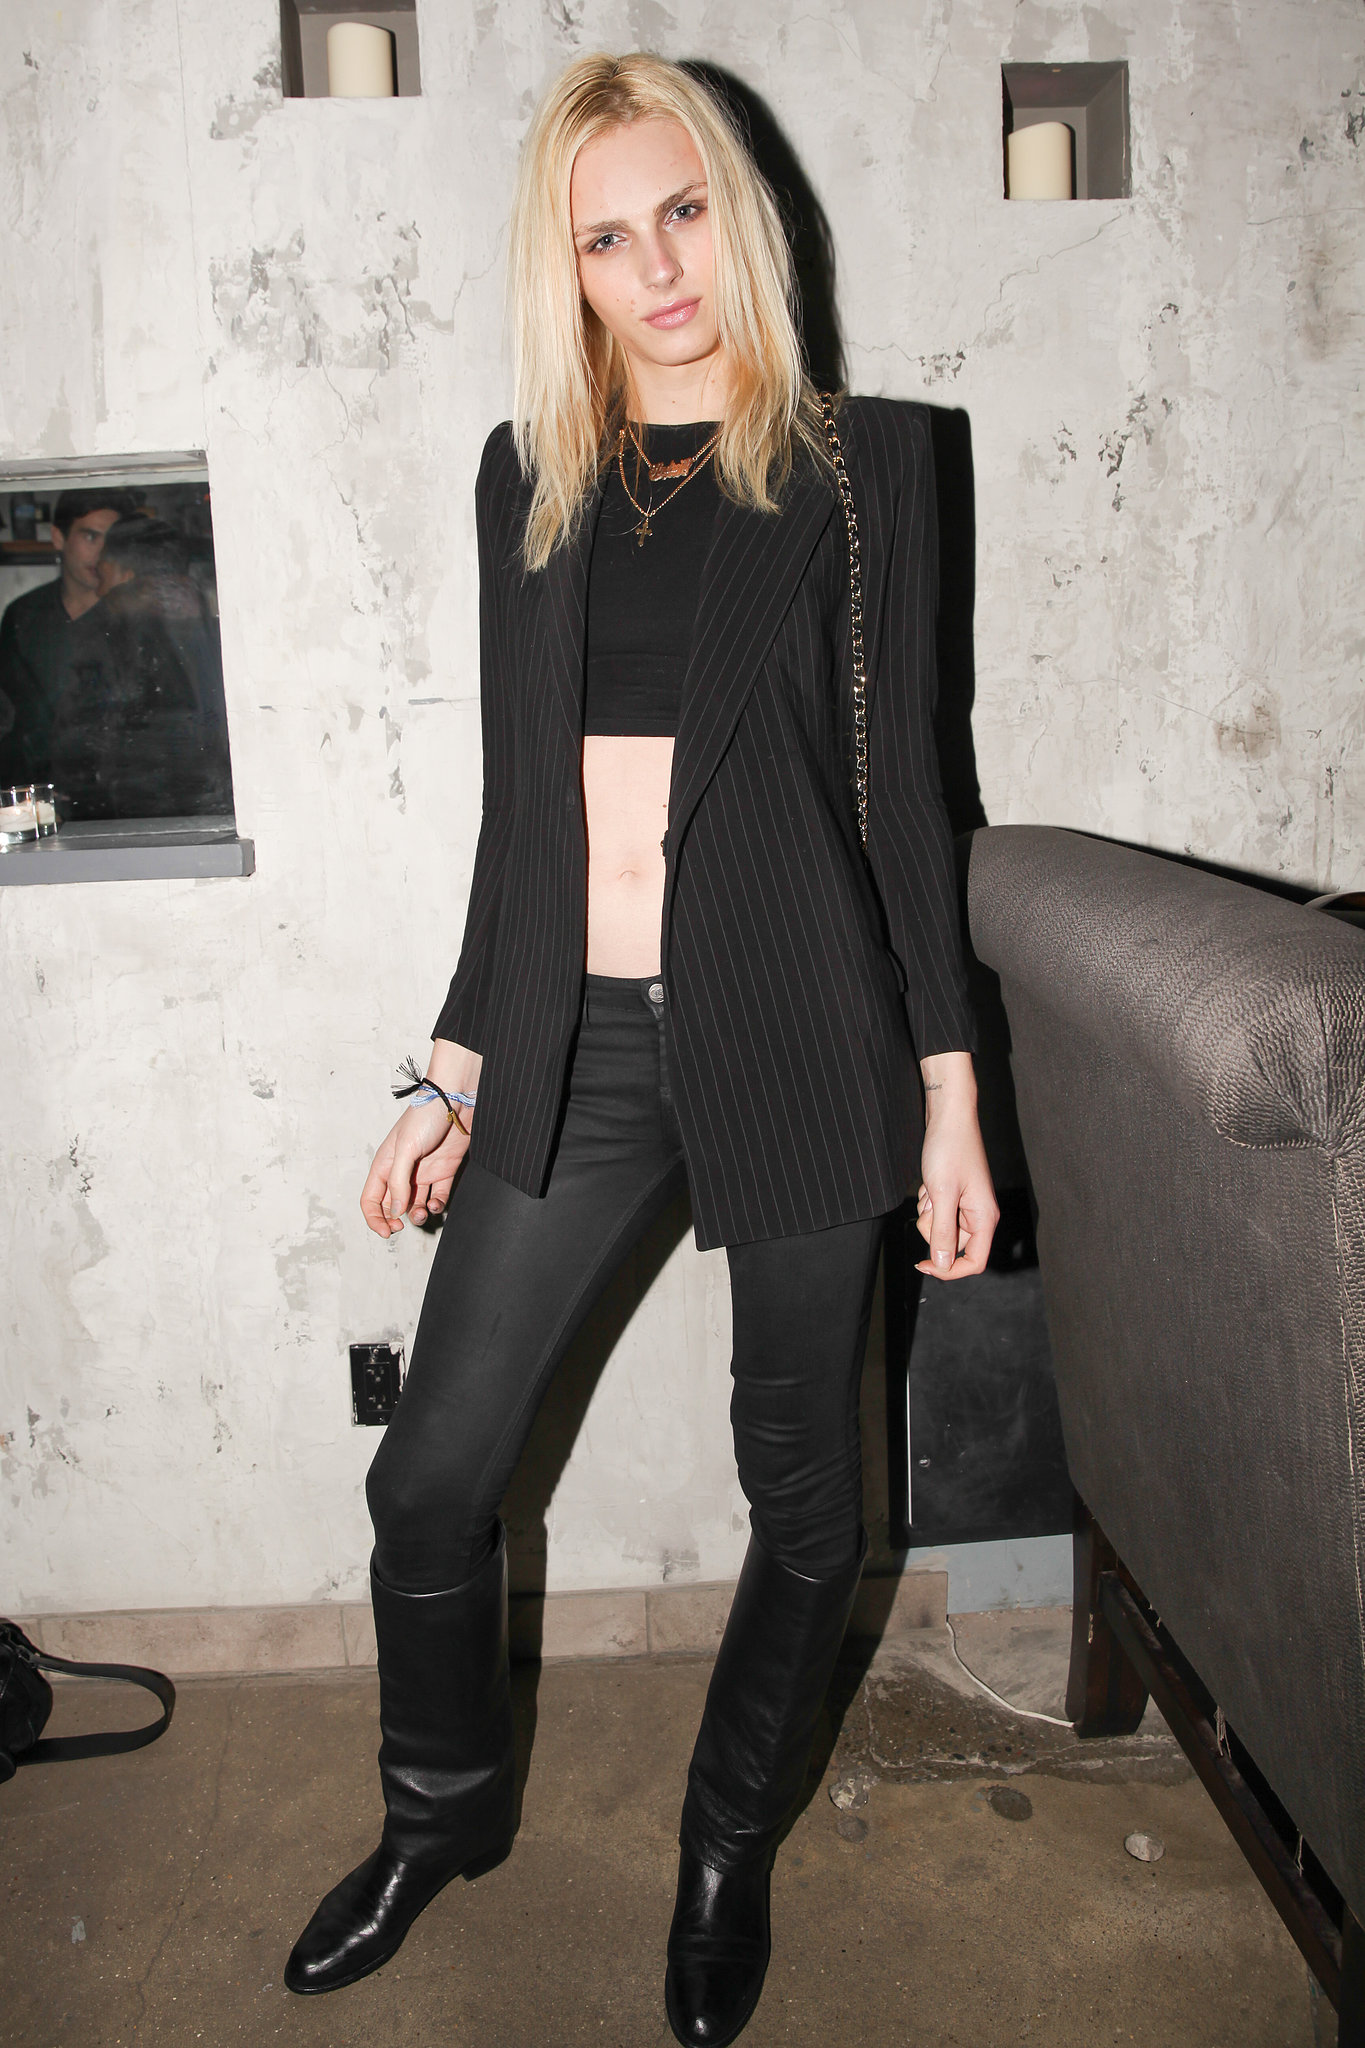 Andrej Pejic at the opening of Backbar in New York.